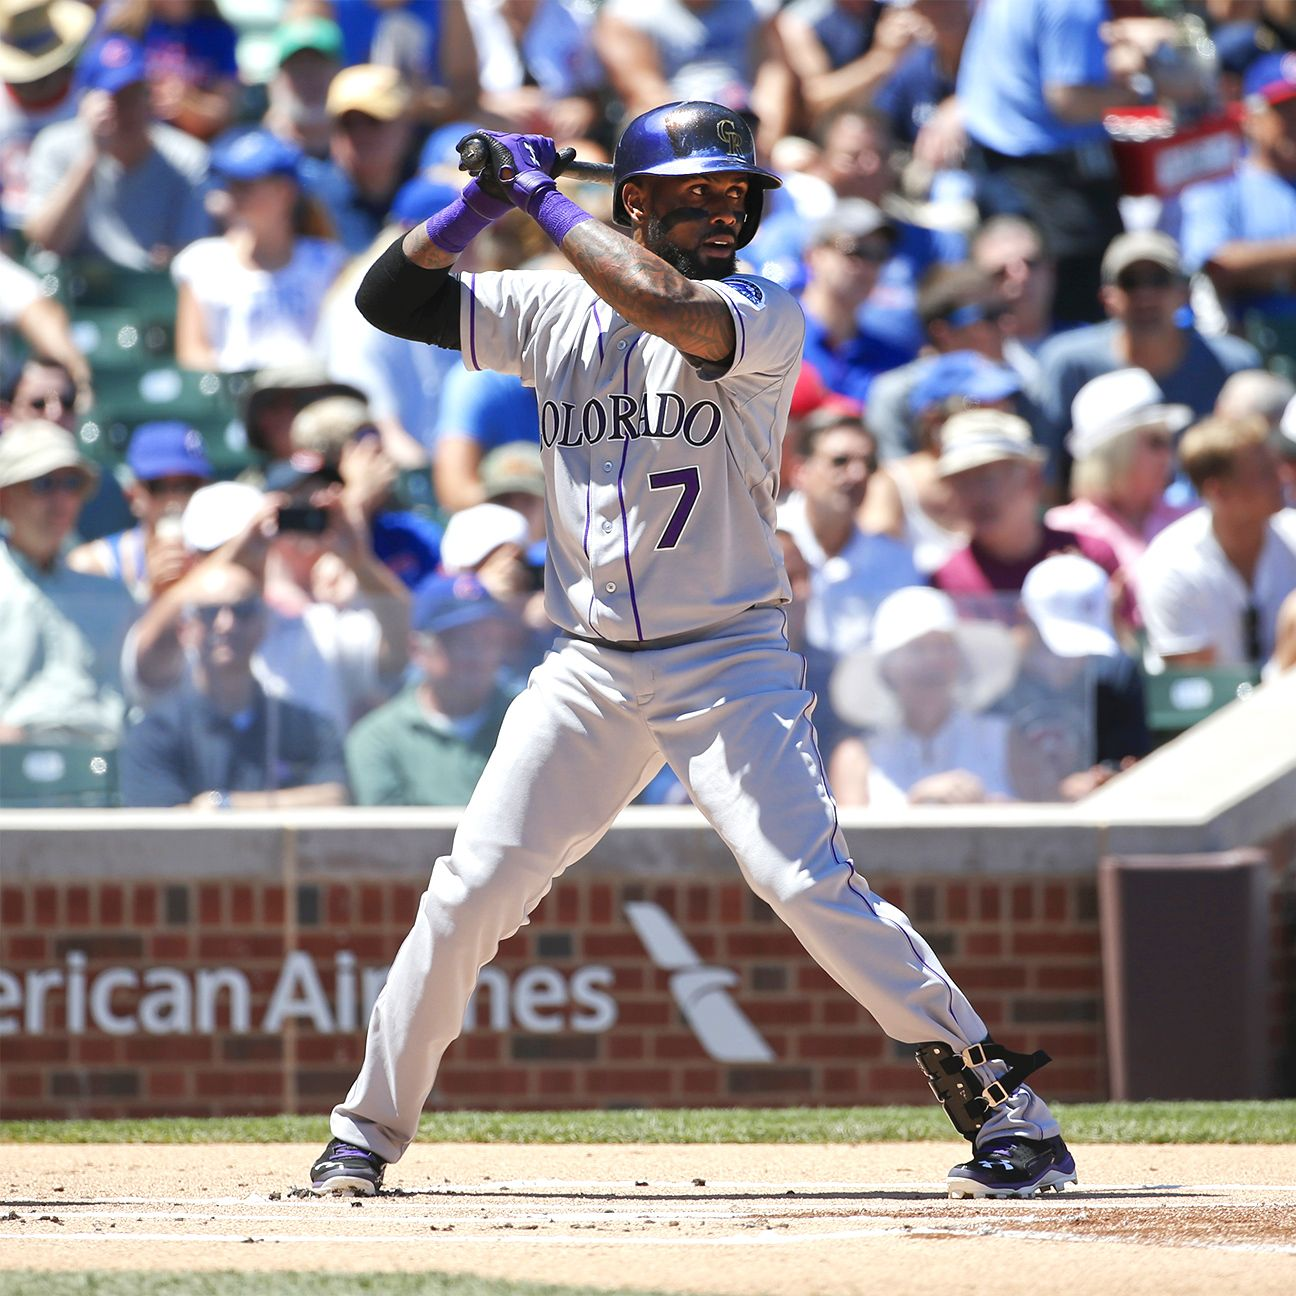 cubs vs rockies tickets mlb odds of making playoffs